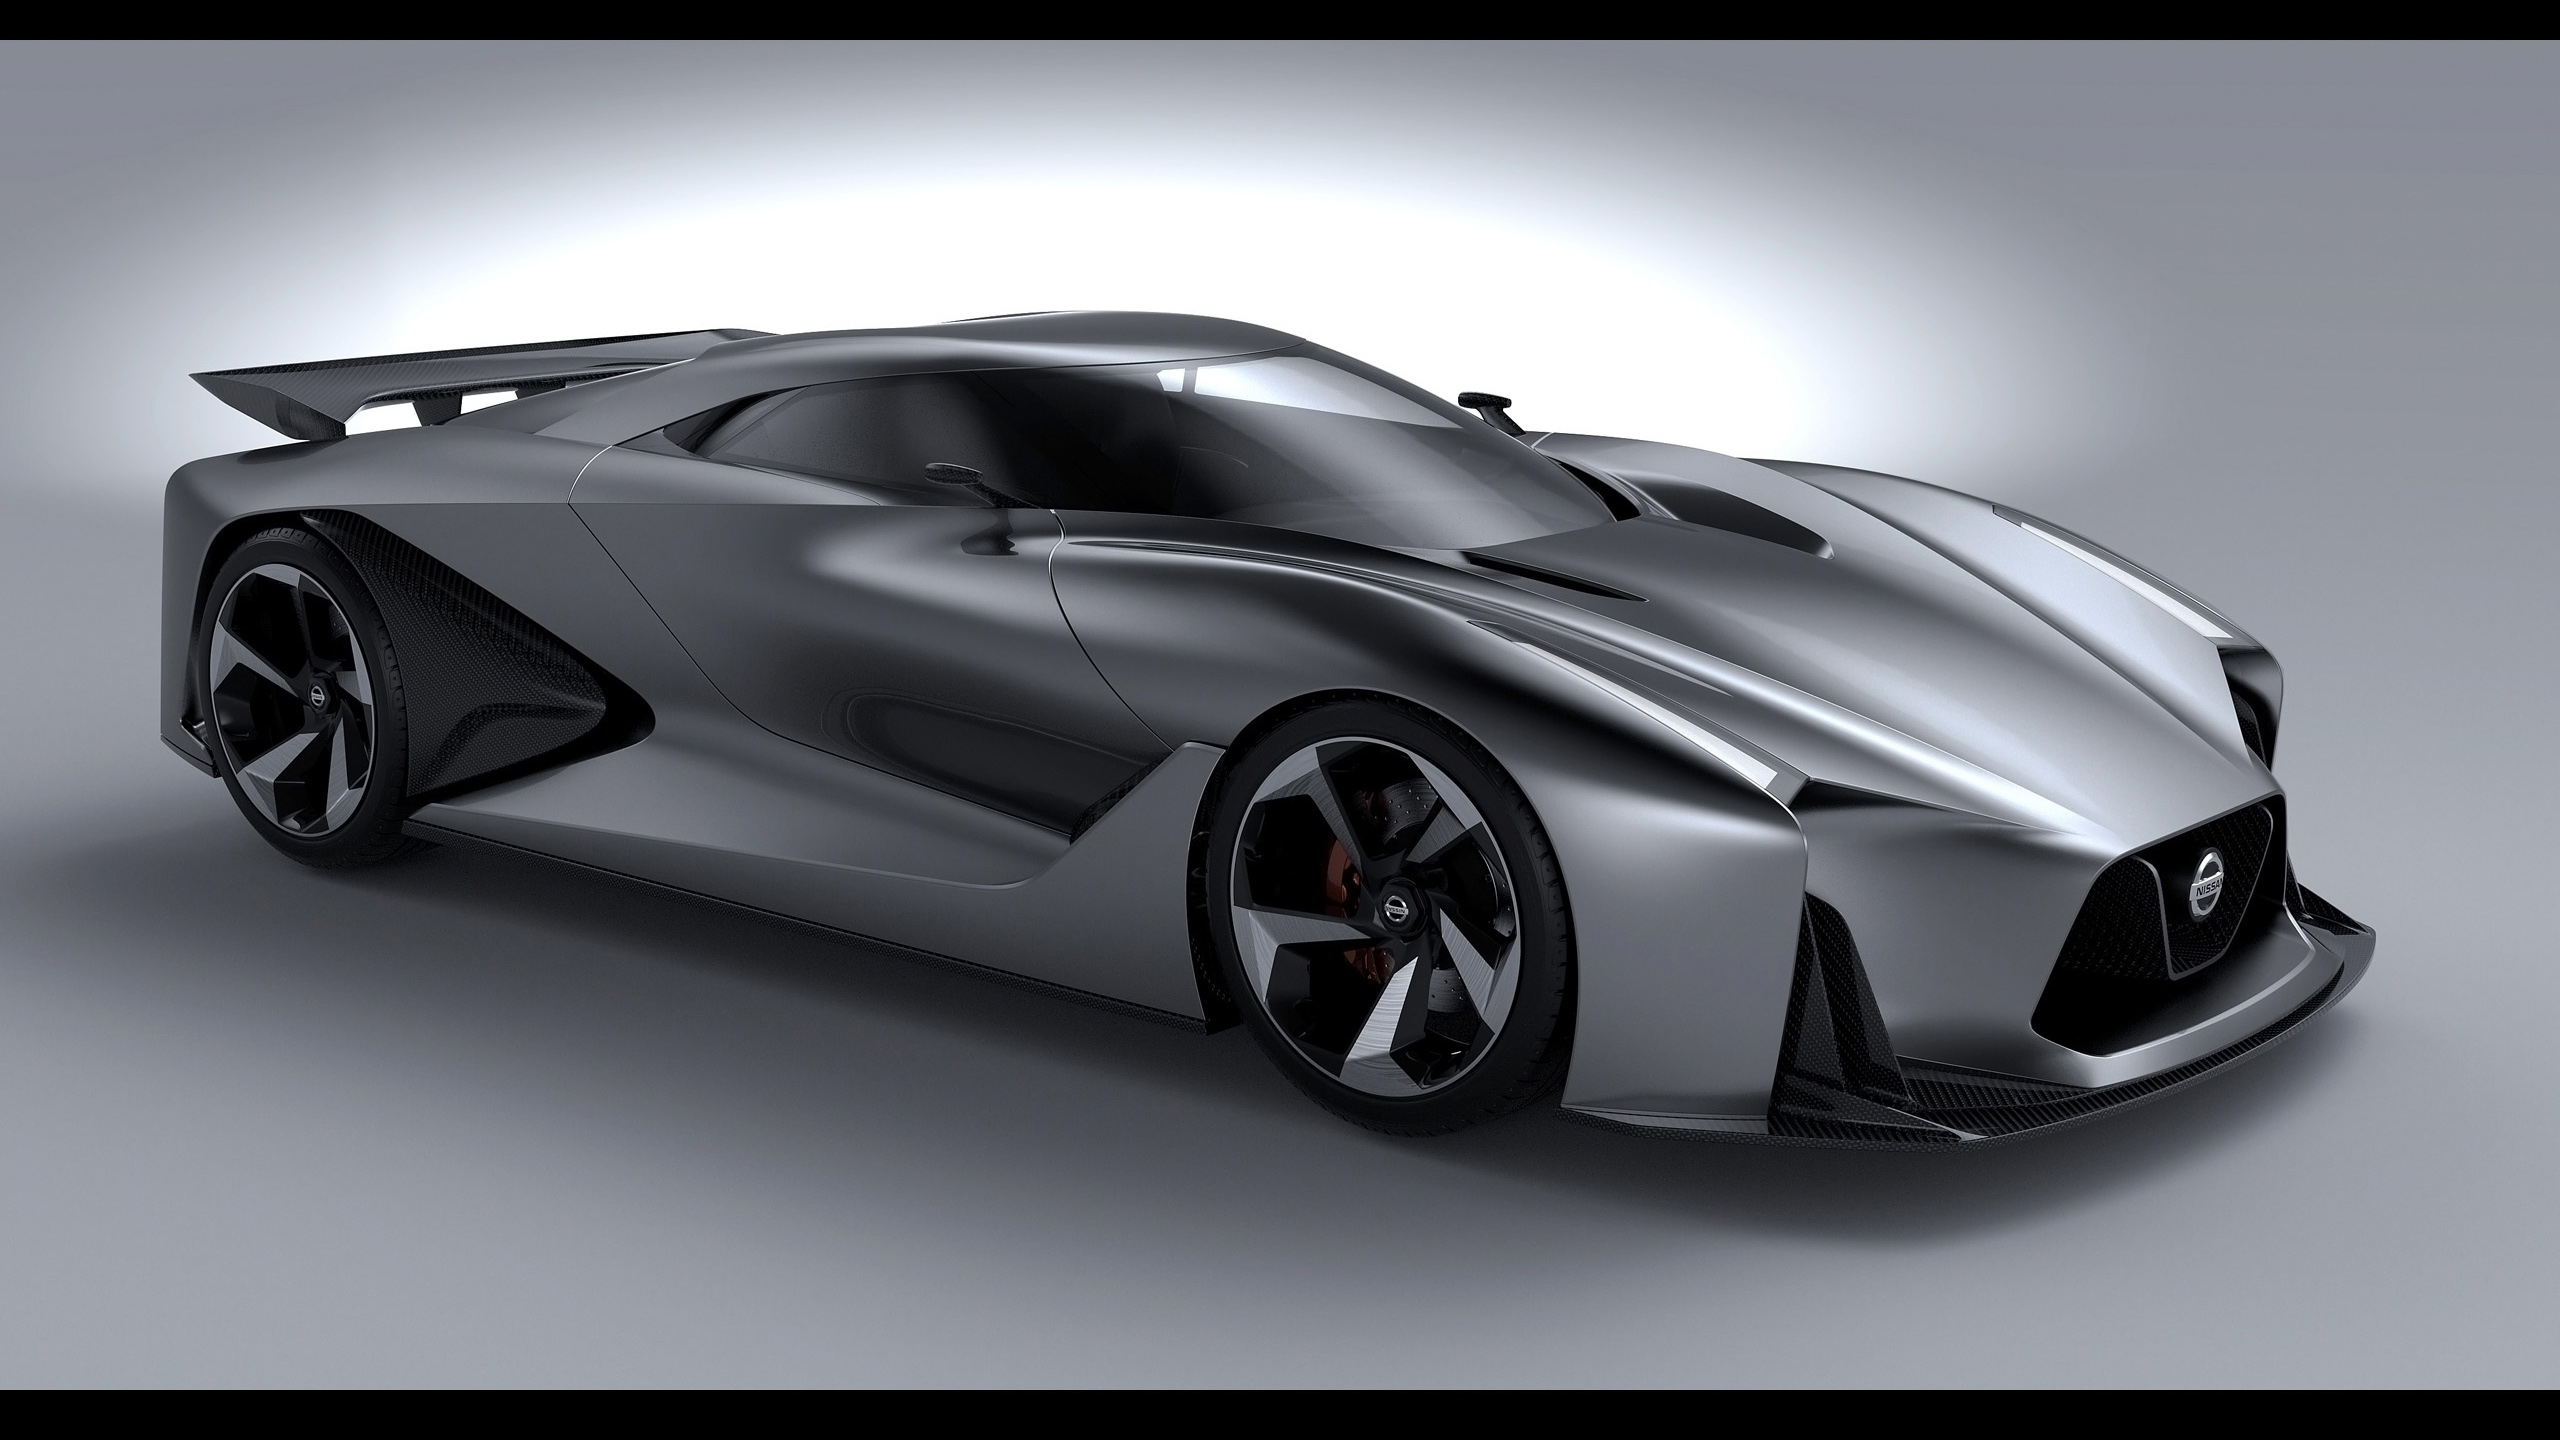 2560x1440 - Nissan Concept Wallpapers 14